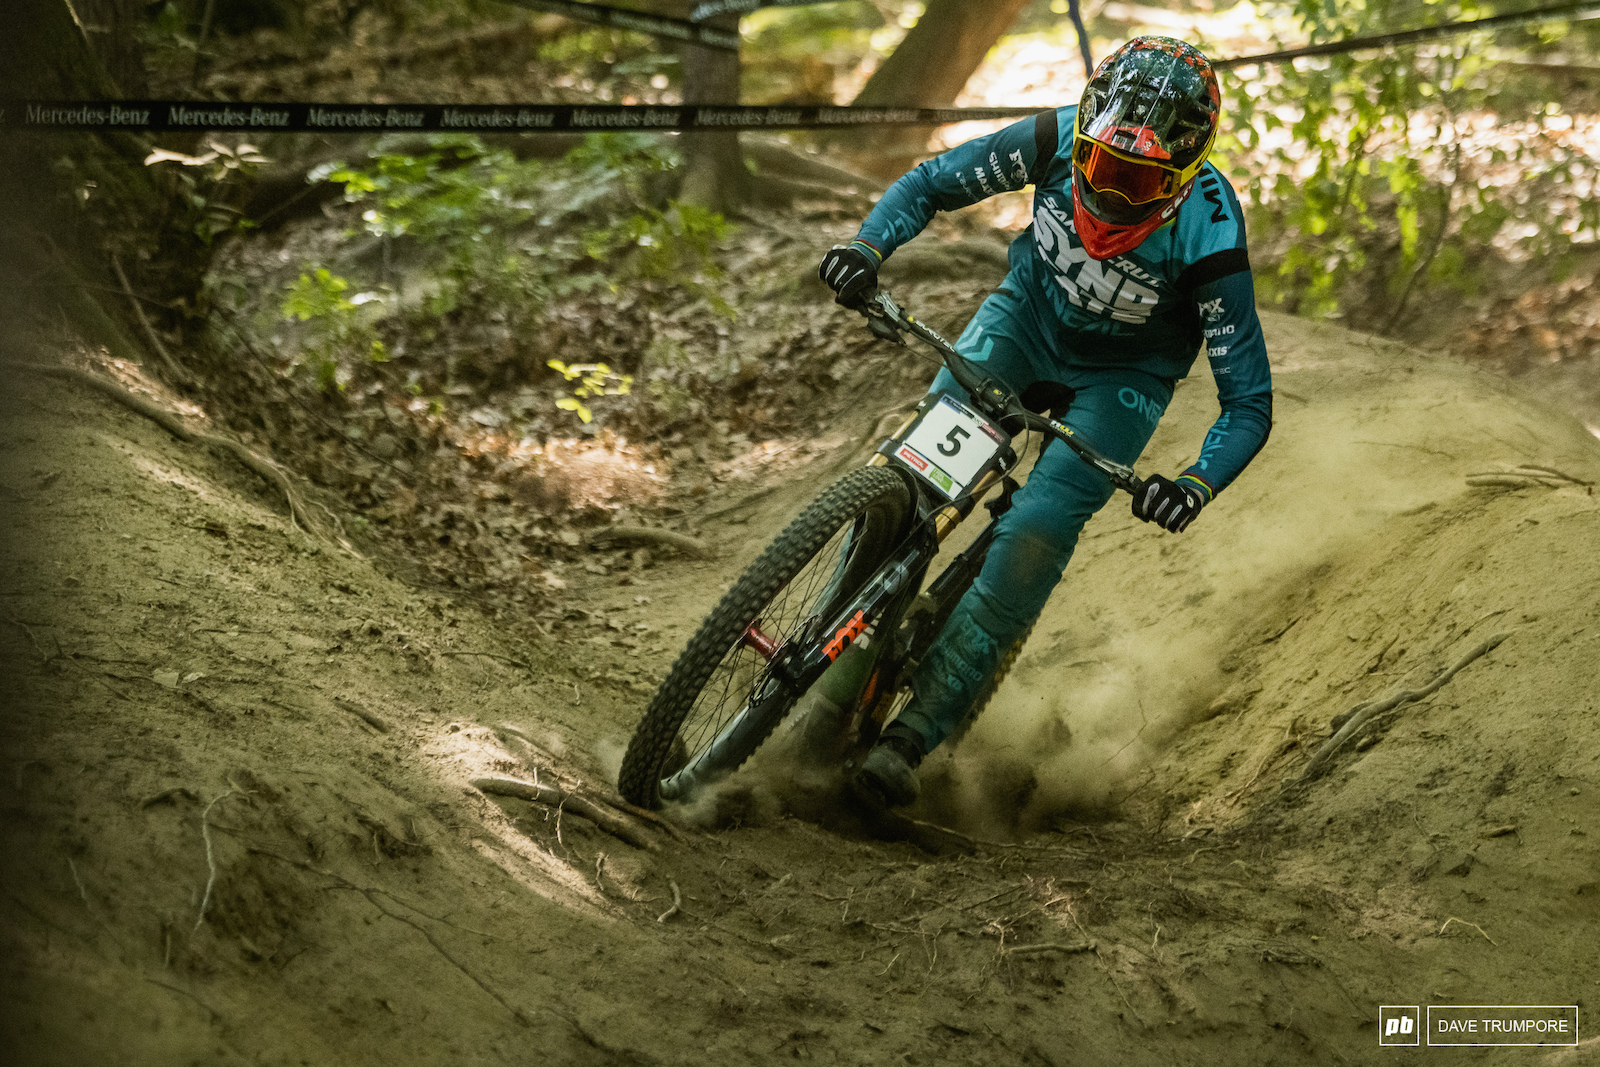 Greg Minnaar mixing it up with the youngsters and finishing the day 4th